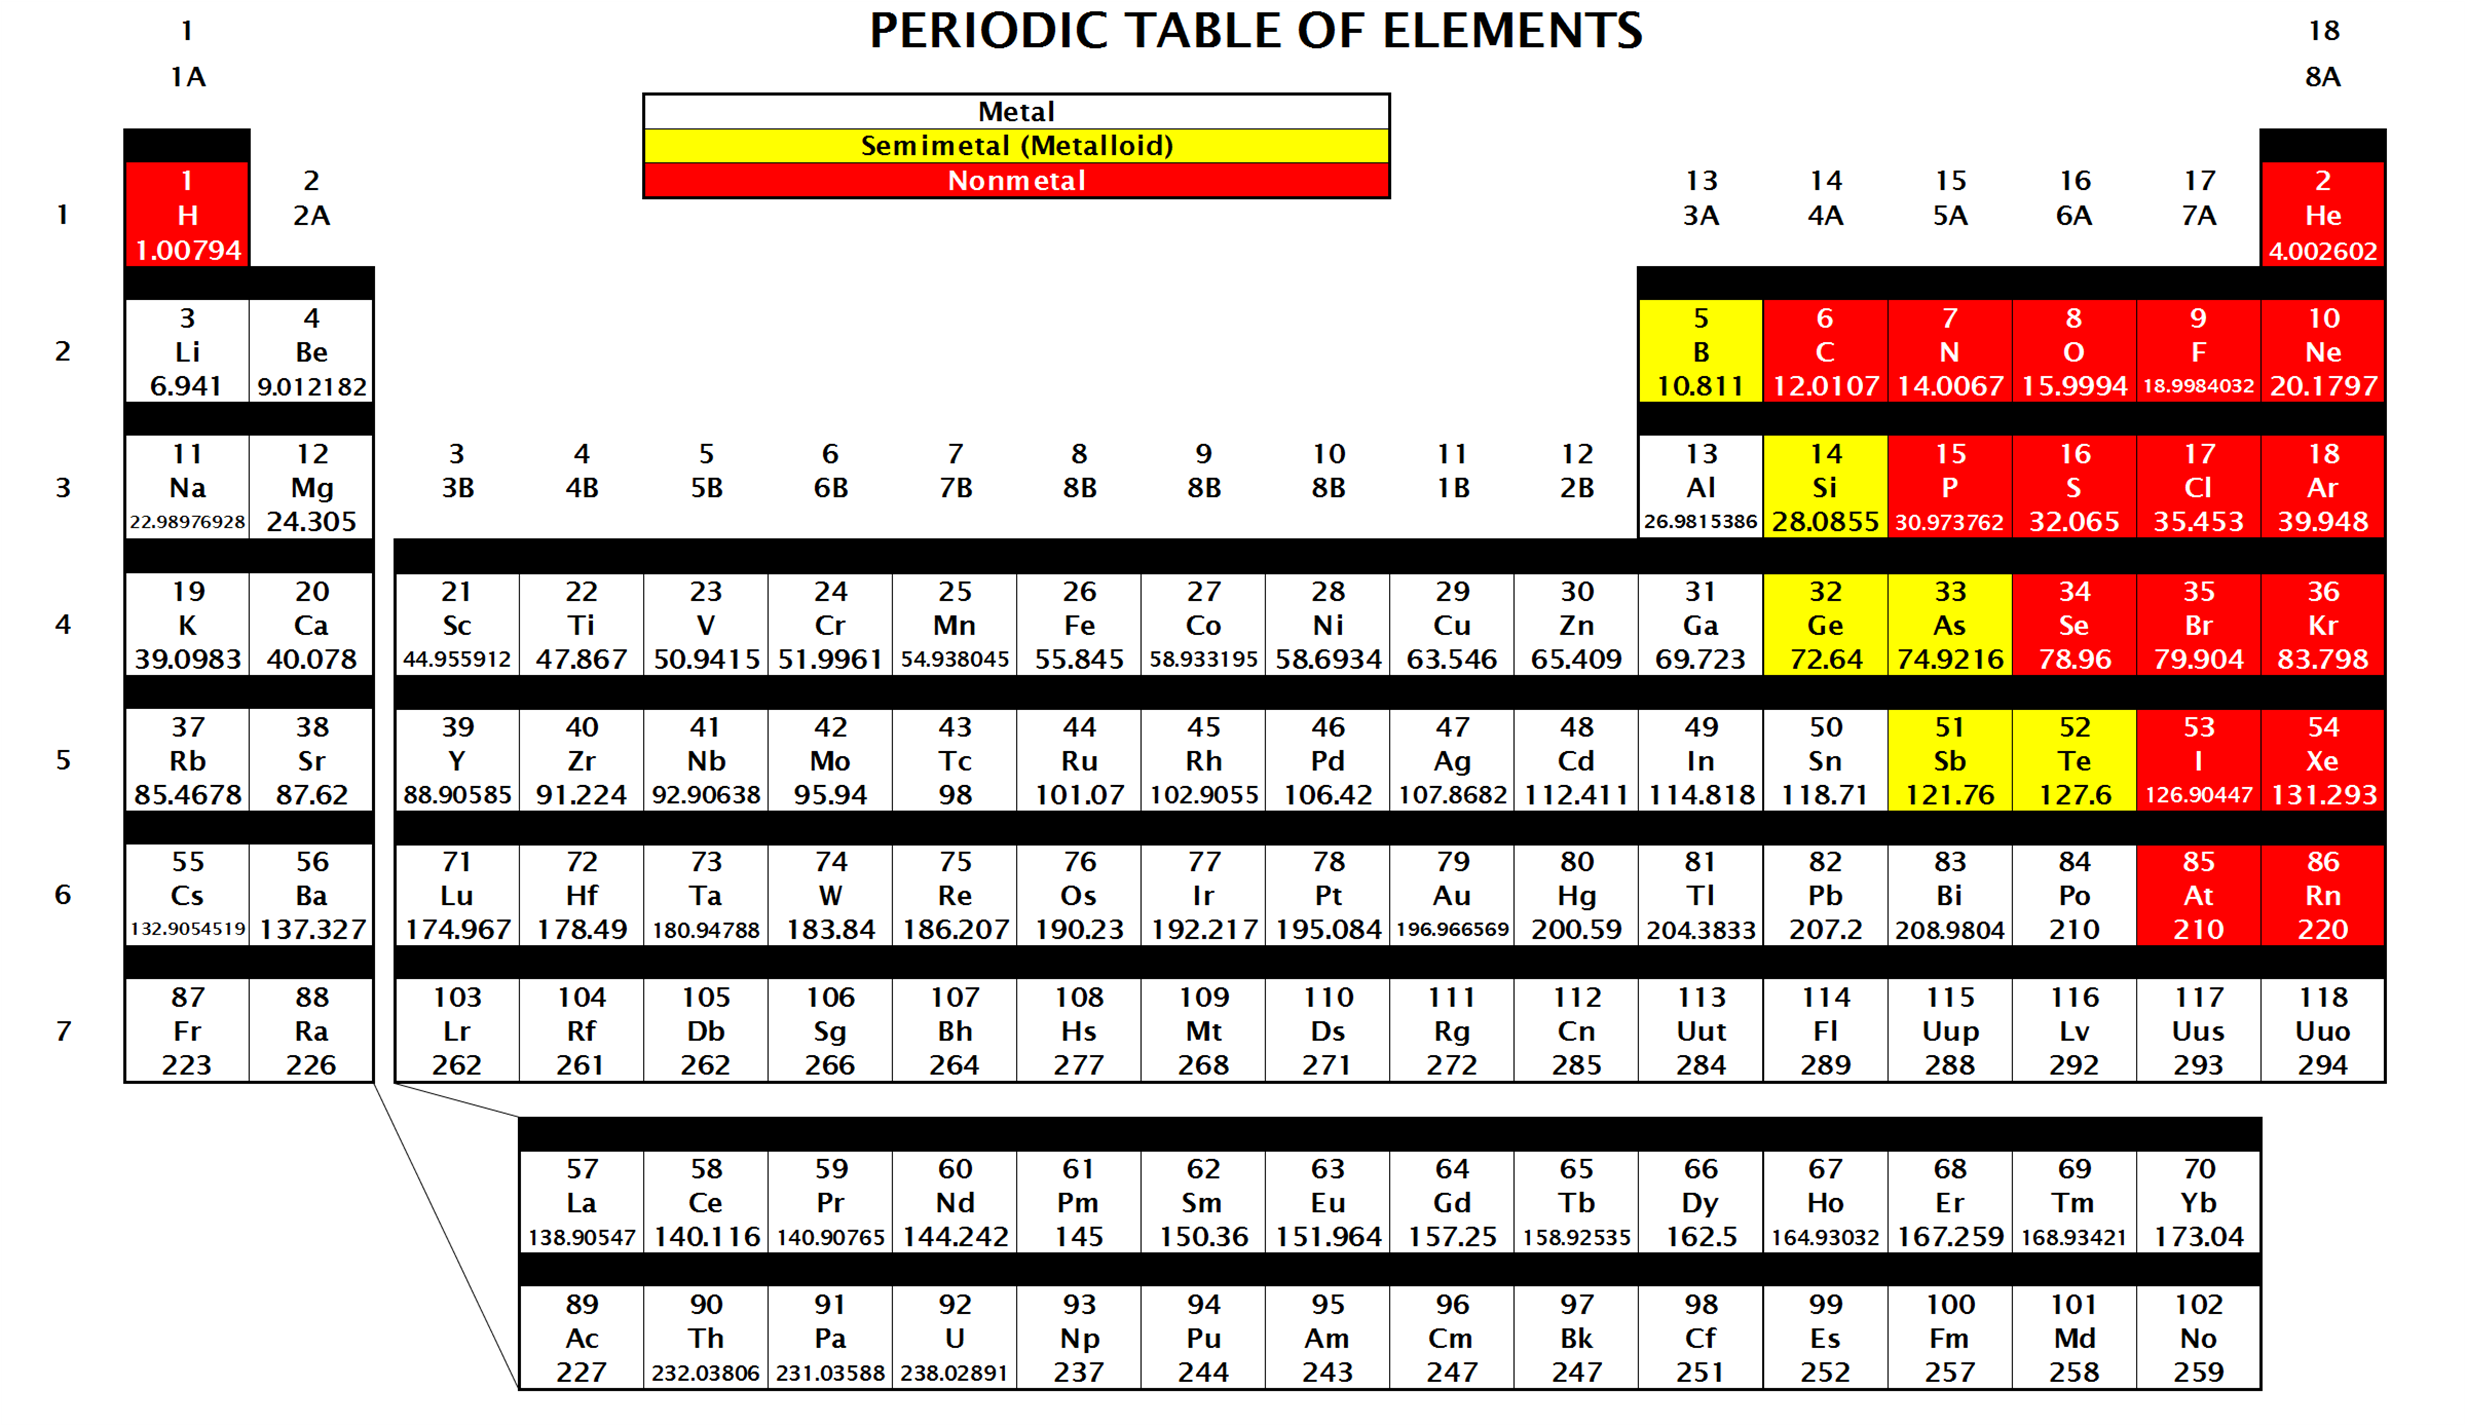 https://sites.google.com/site/ozarkamaths/chemistry/periodic-table/Periodic%20Table.png